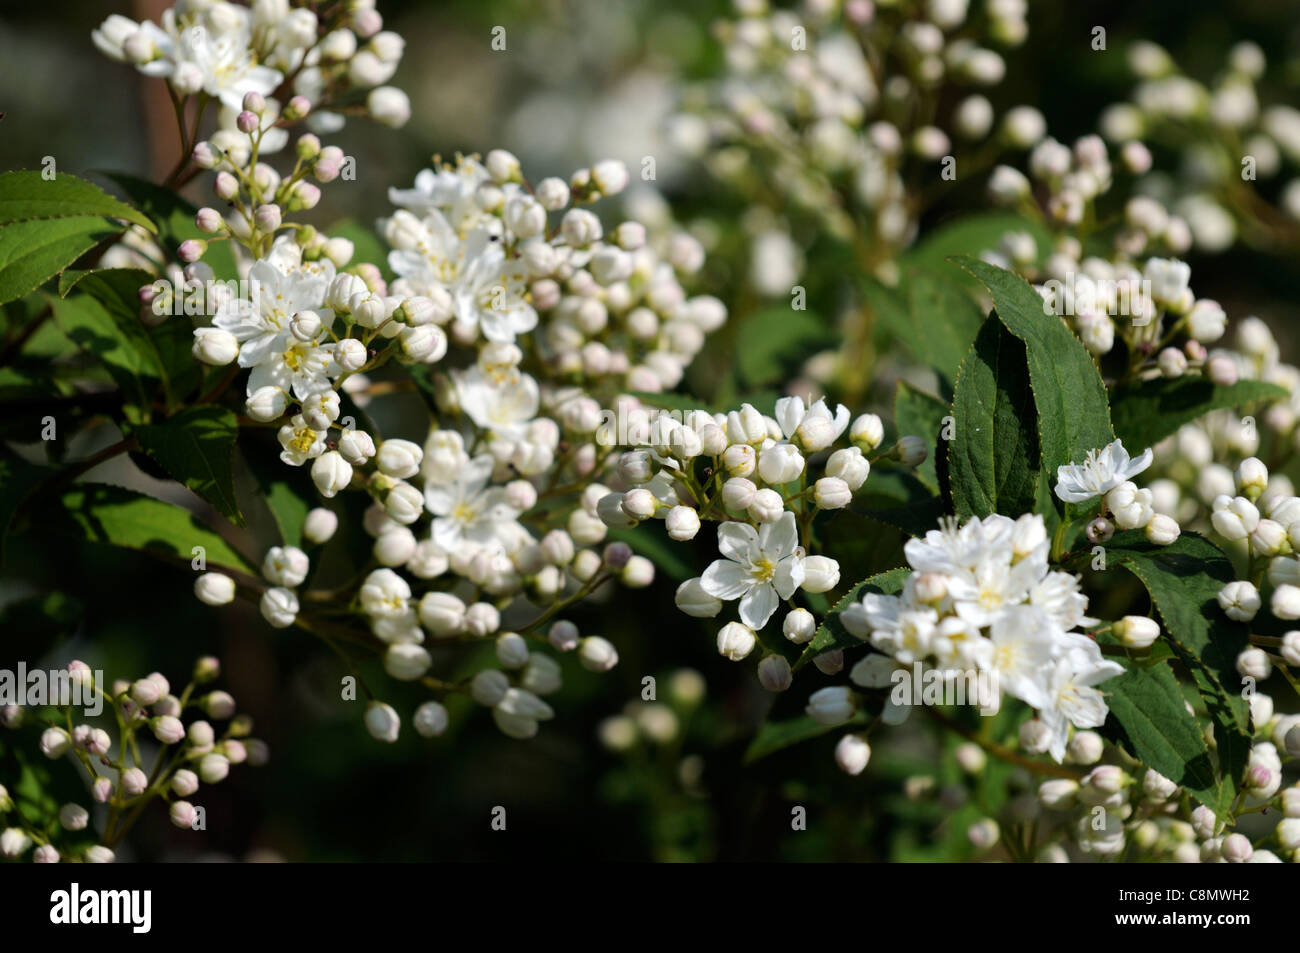 Deutzia x lemoinei flowers bloom blossom hardy perennial deciduous deutzia x lemoinei flowers bloom blossom hardy perennial deciduous shrub white flowers spring mightylinksfo